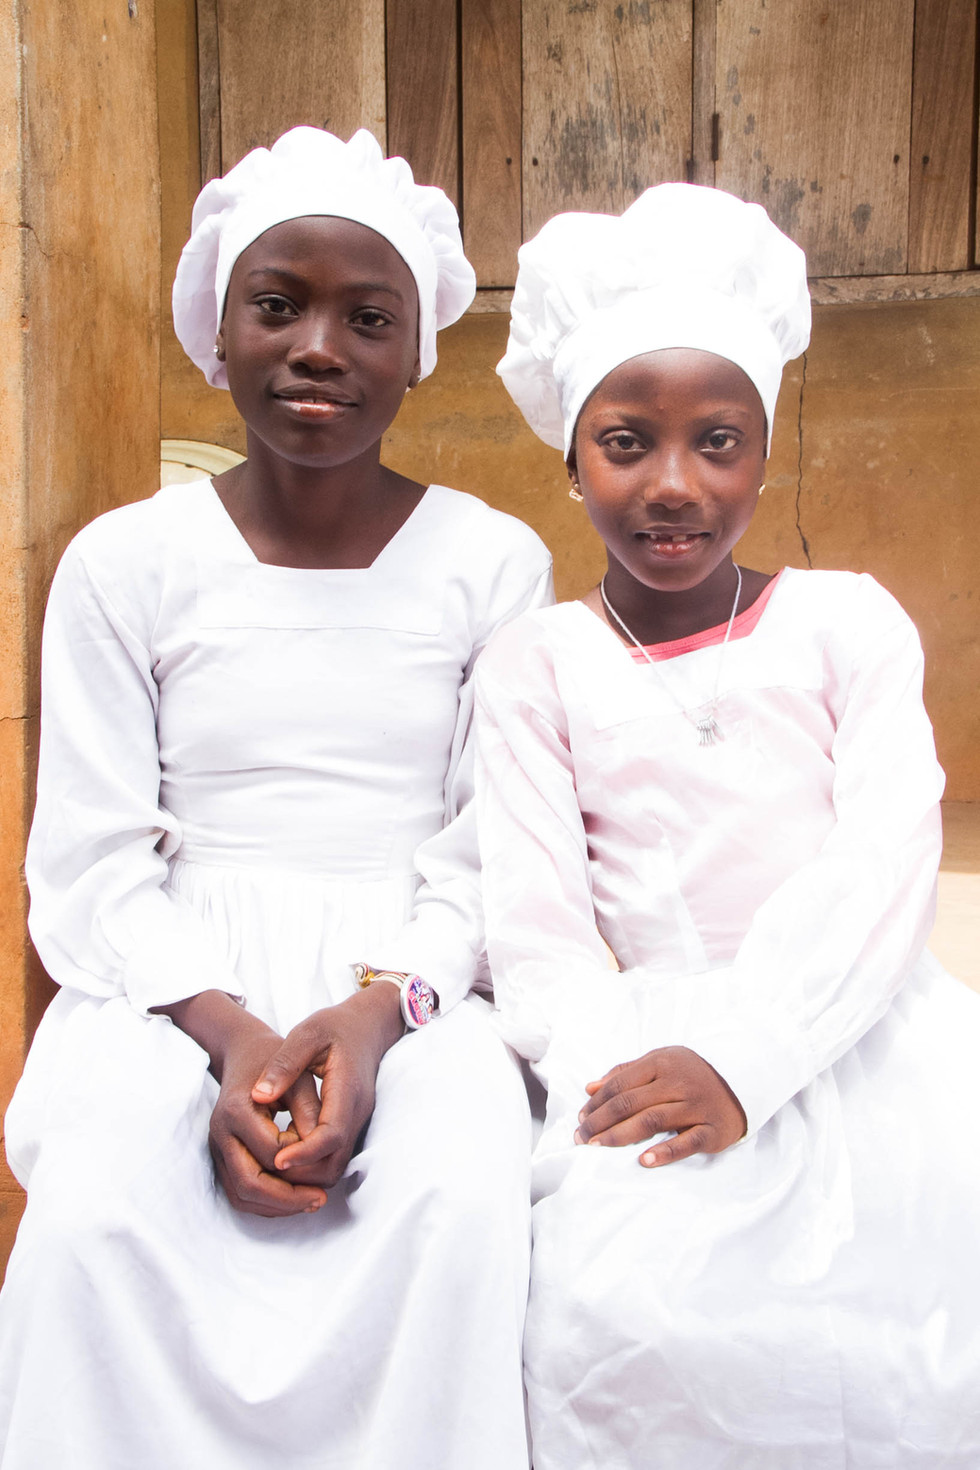 Scabadah's younger cousins posed for a picture.